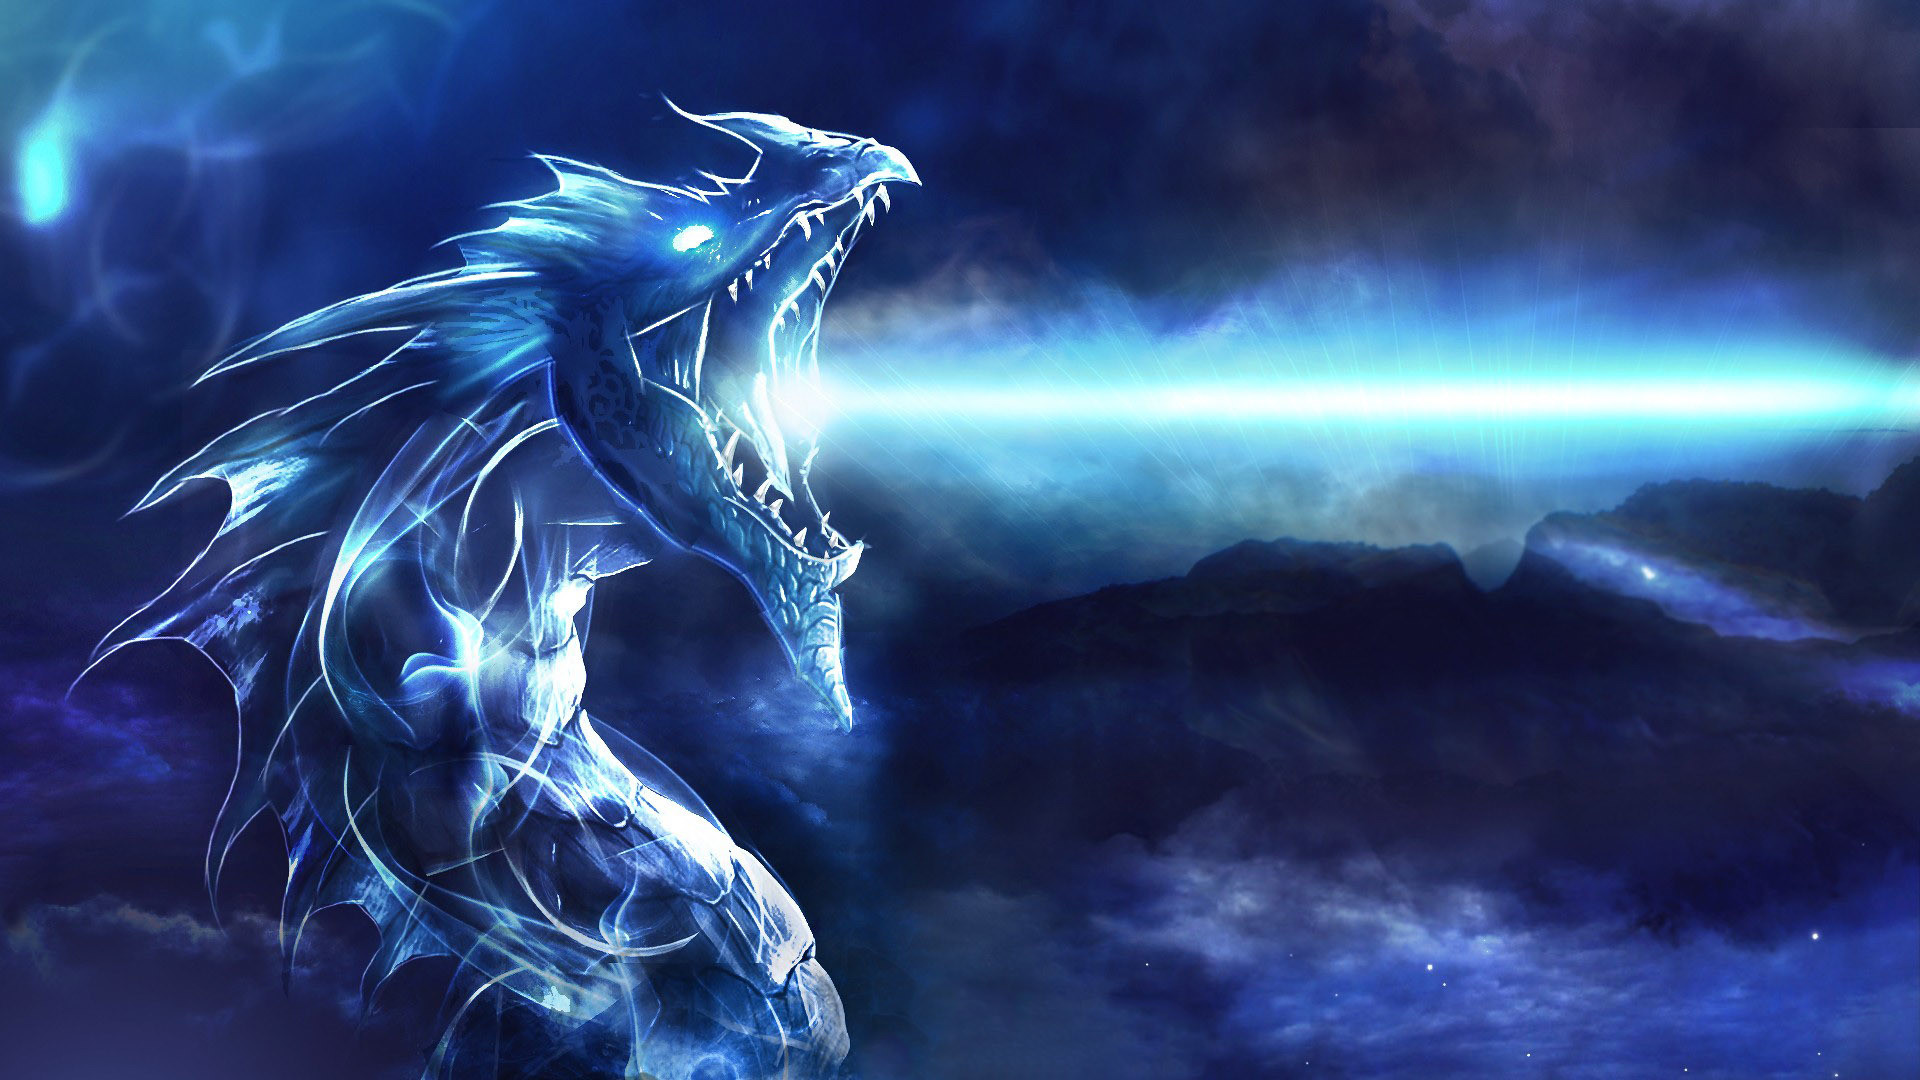 Res: 1920x1080, Dragon Wallpaper Cell Phone